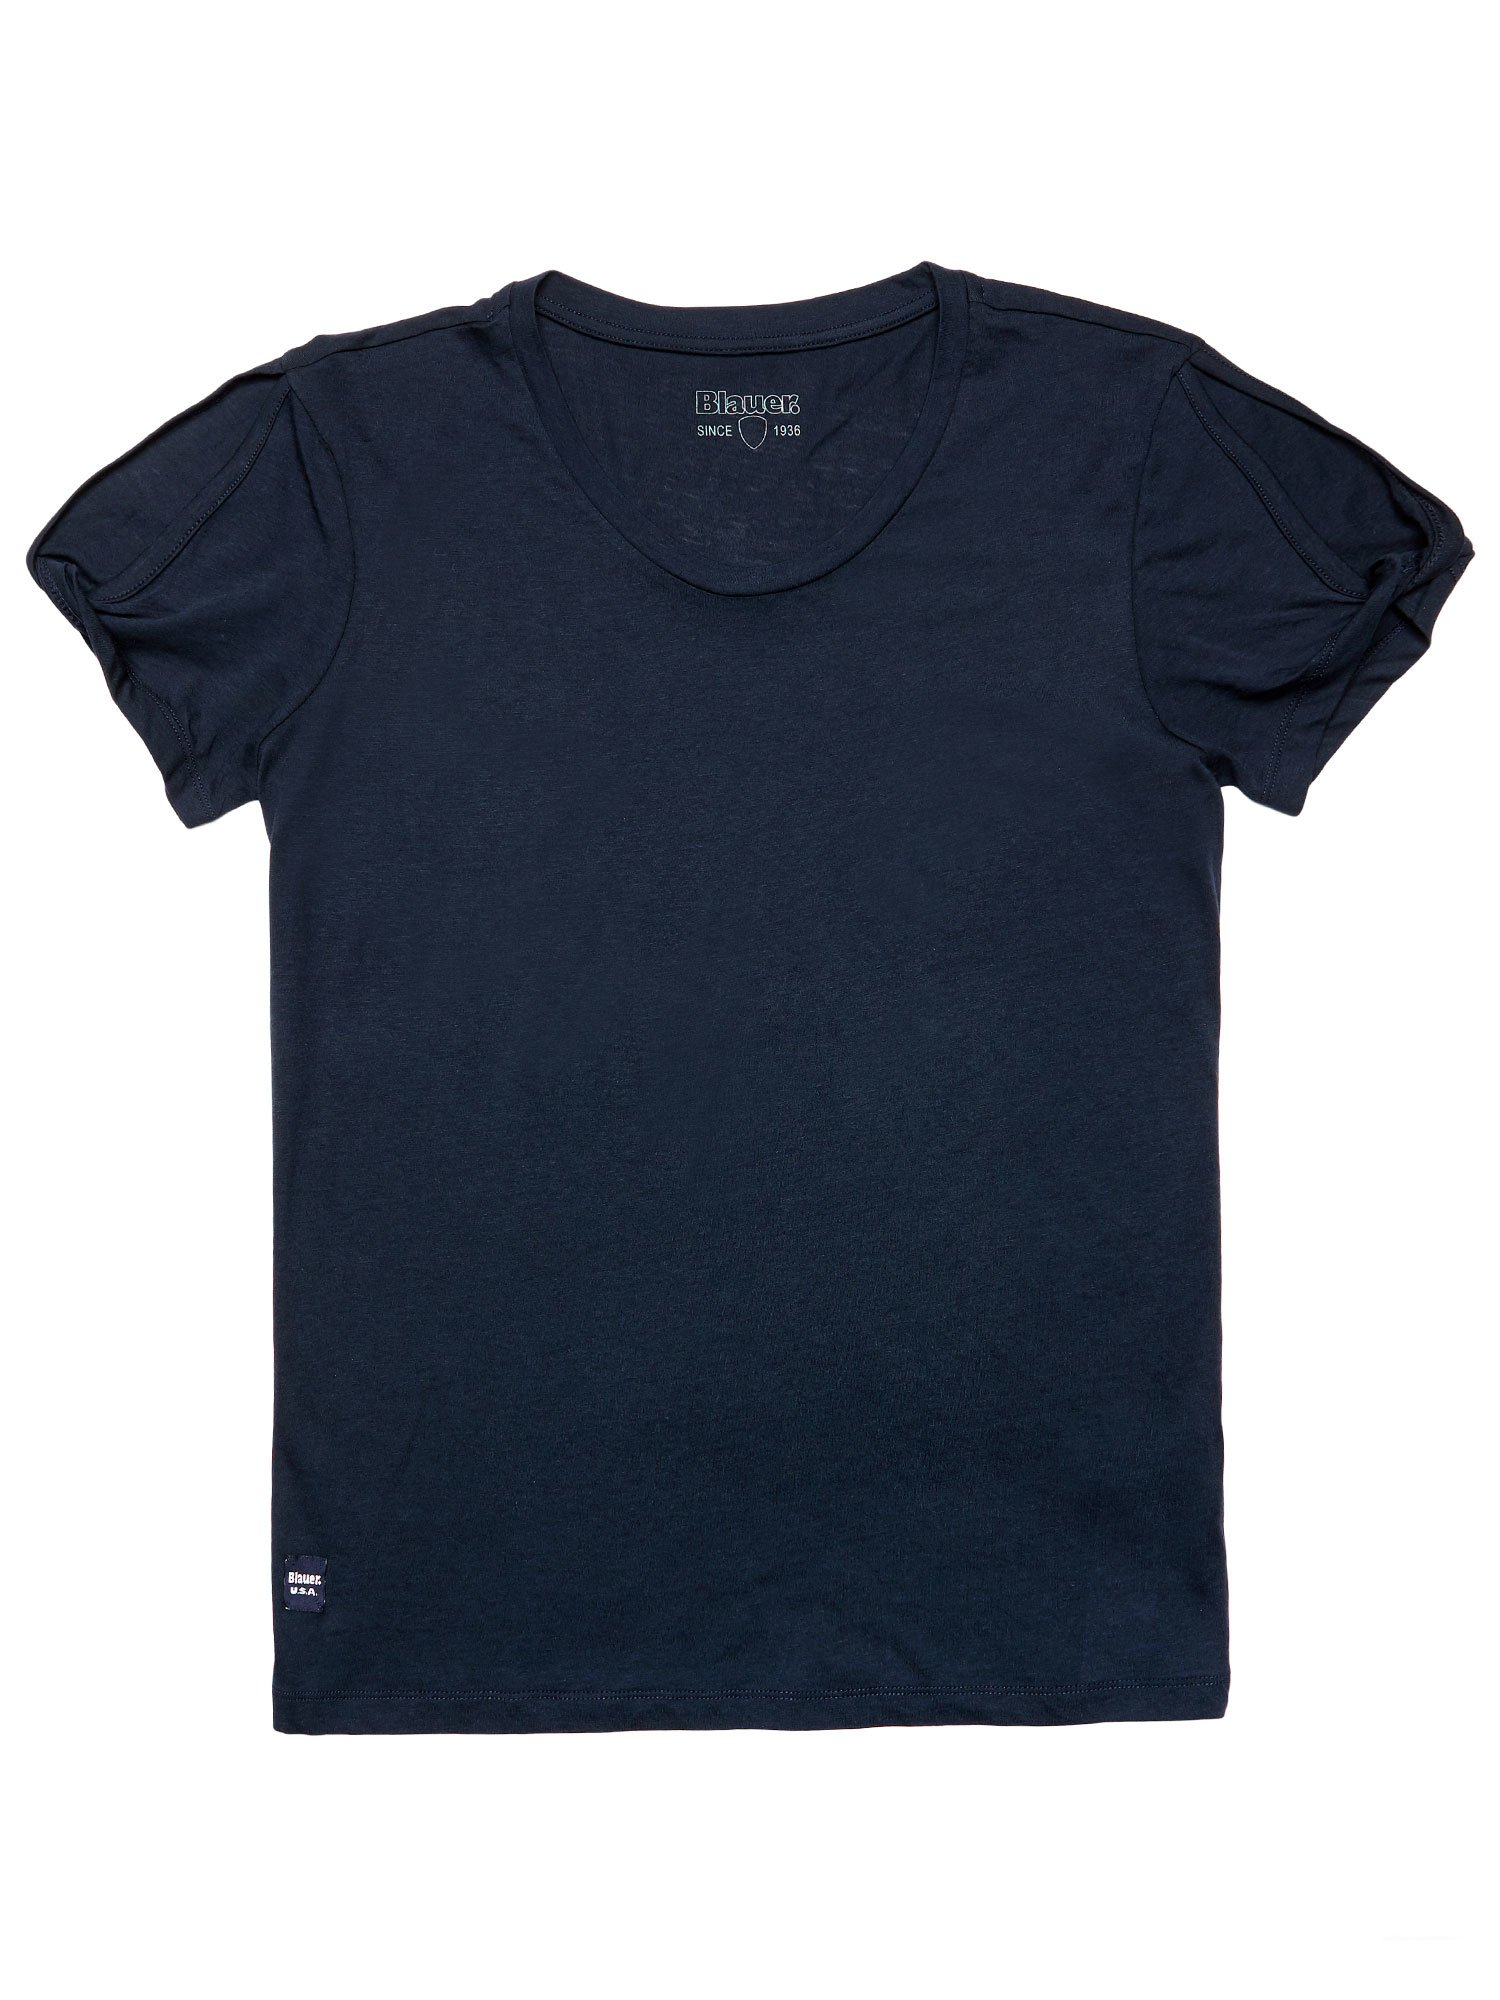 CUT OUT COTTON MODAL T-SHIRT - Blauer